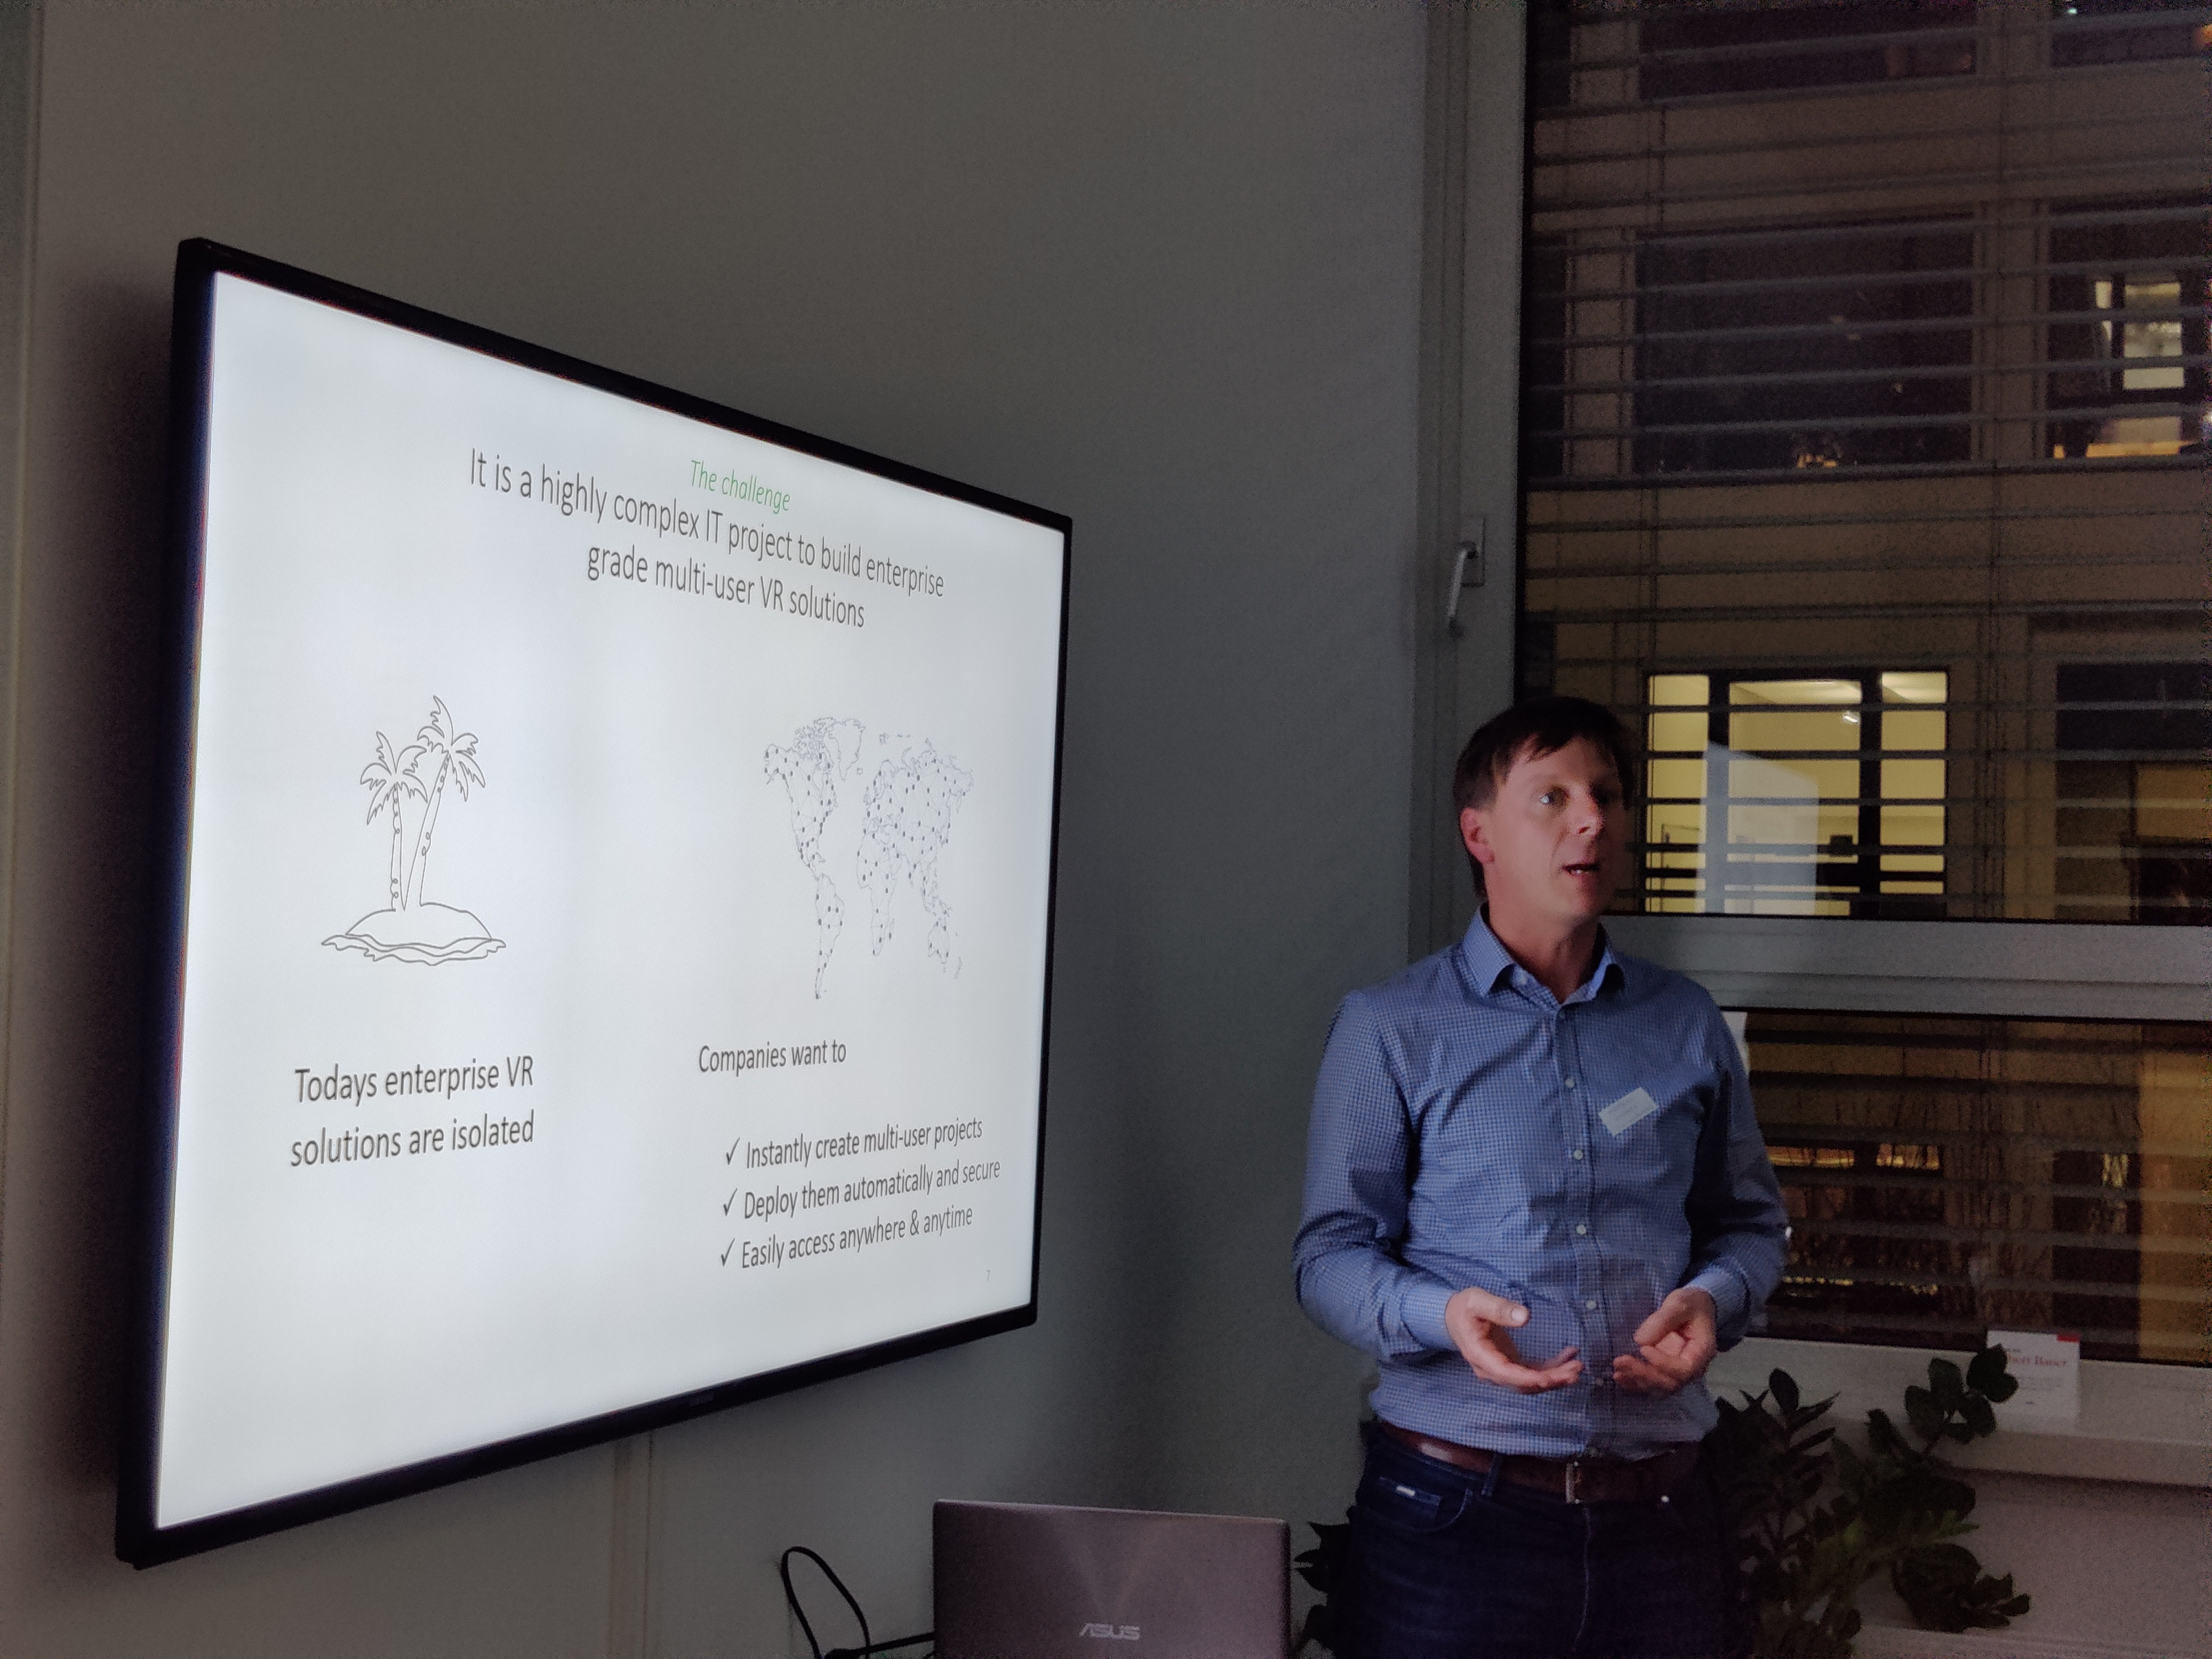 Mathias Wochnig, CEO of vr-on GmbH, presenting at the Unreal Winter Meetup in Munich, 2020